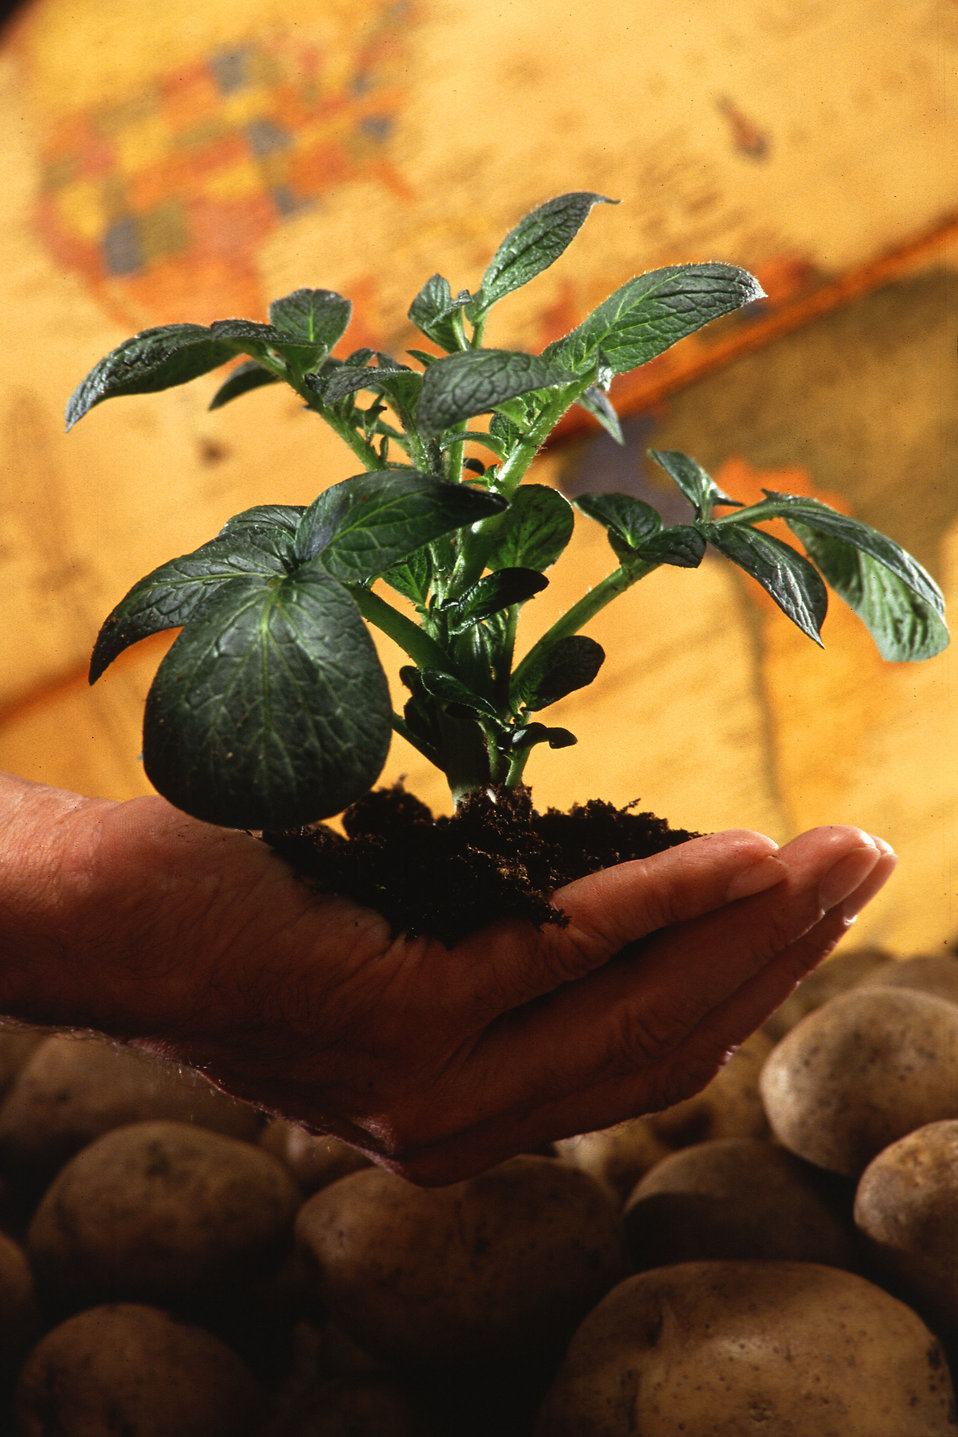 A hand holding a young potato plant.